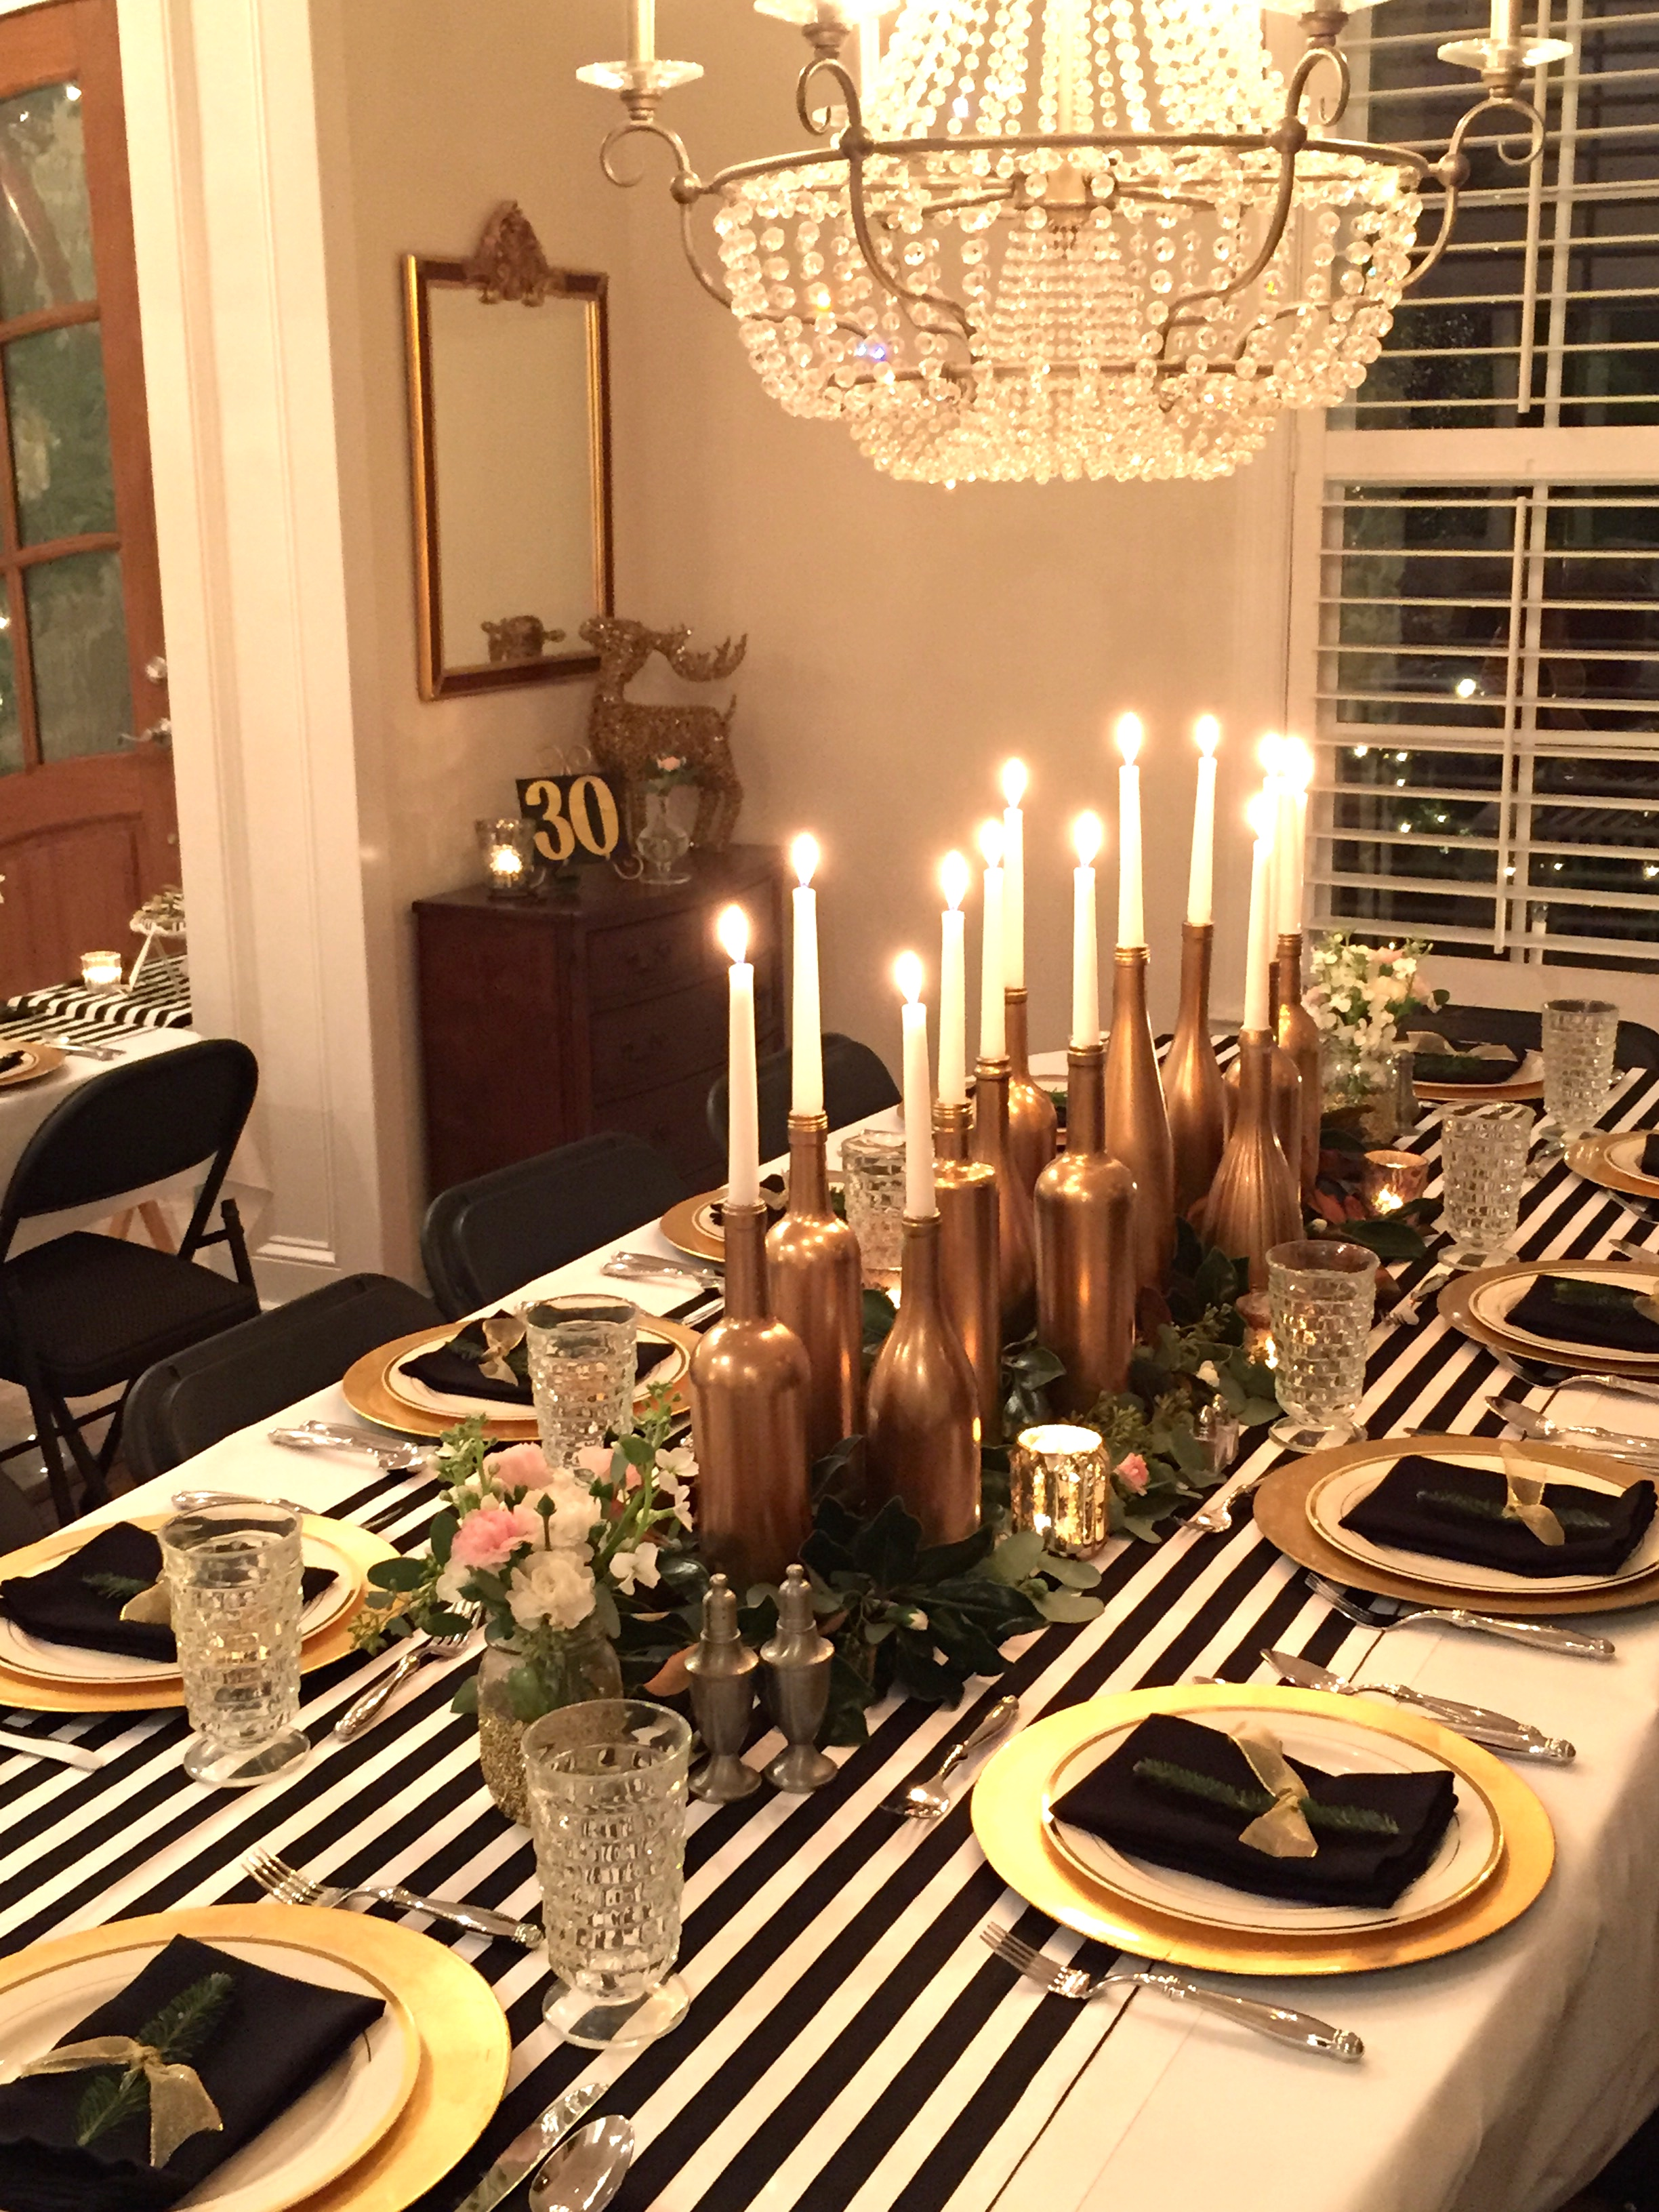 Gold, Black, And White: My 30th Birthday Dinner Party   SevenLayerCharlotte